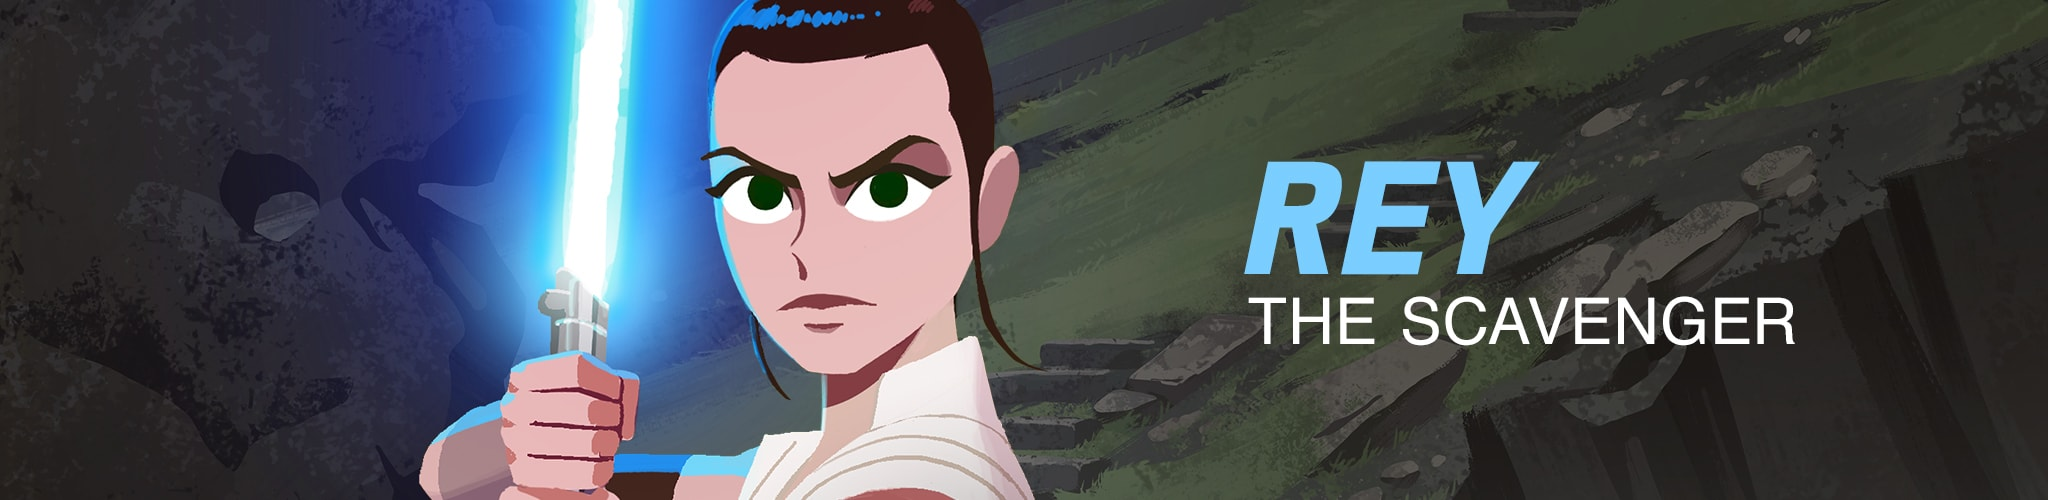 Rey - The Scavenger